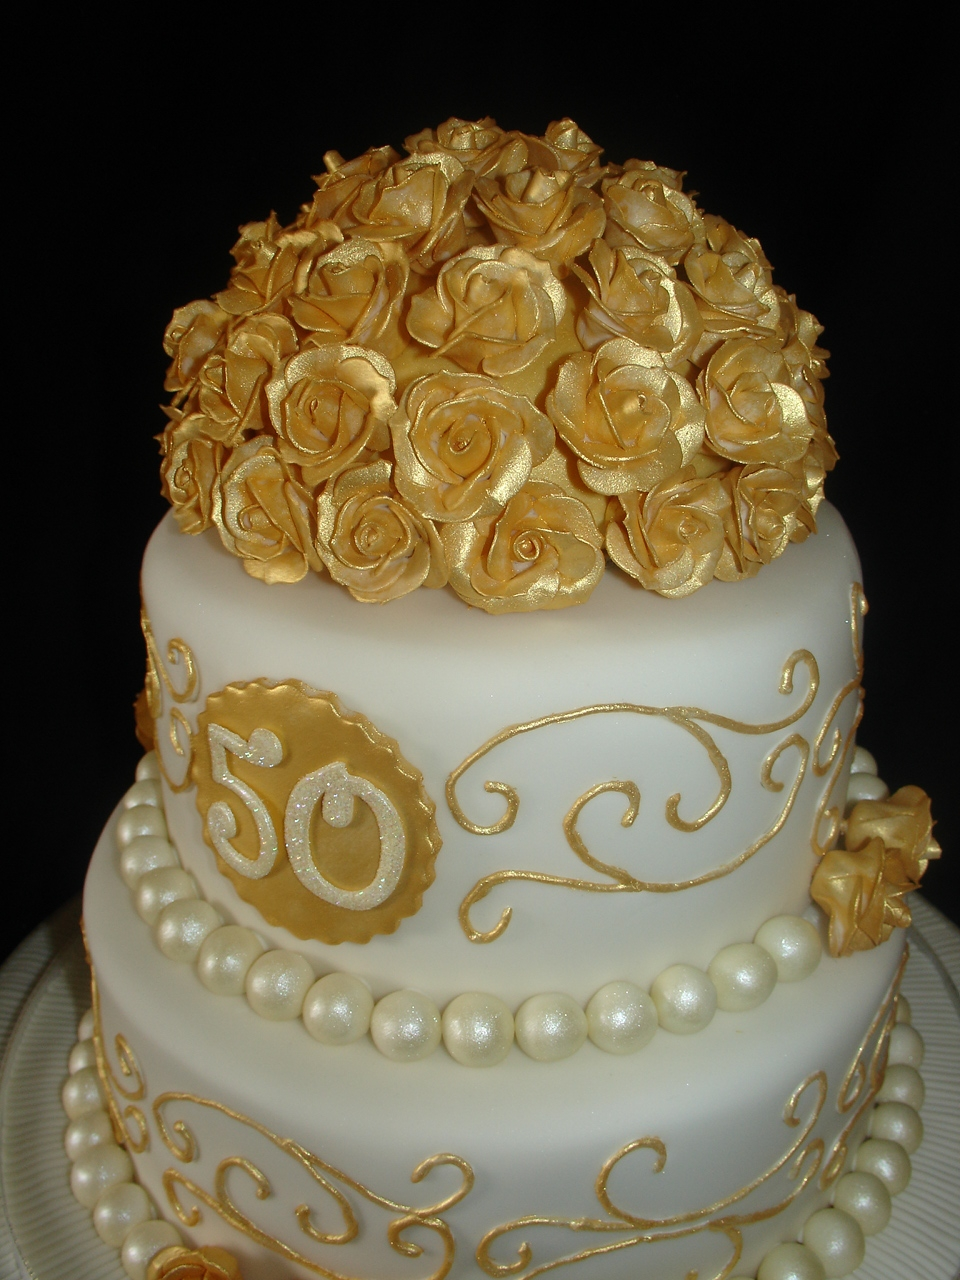 Golden Wedding Anniversary Cake Recipes